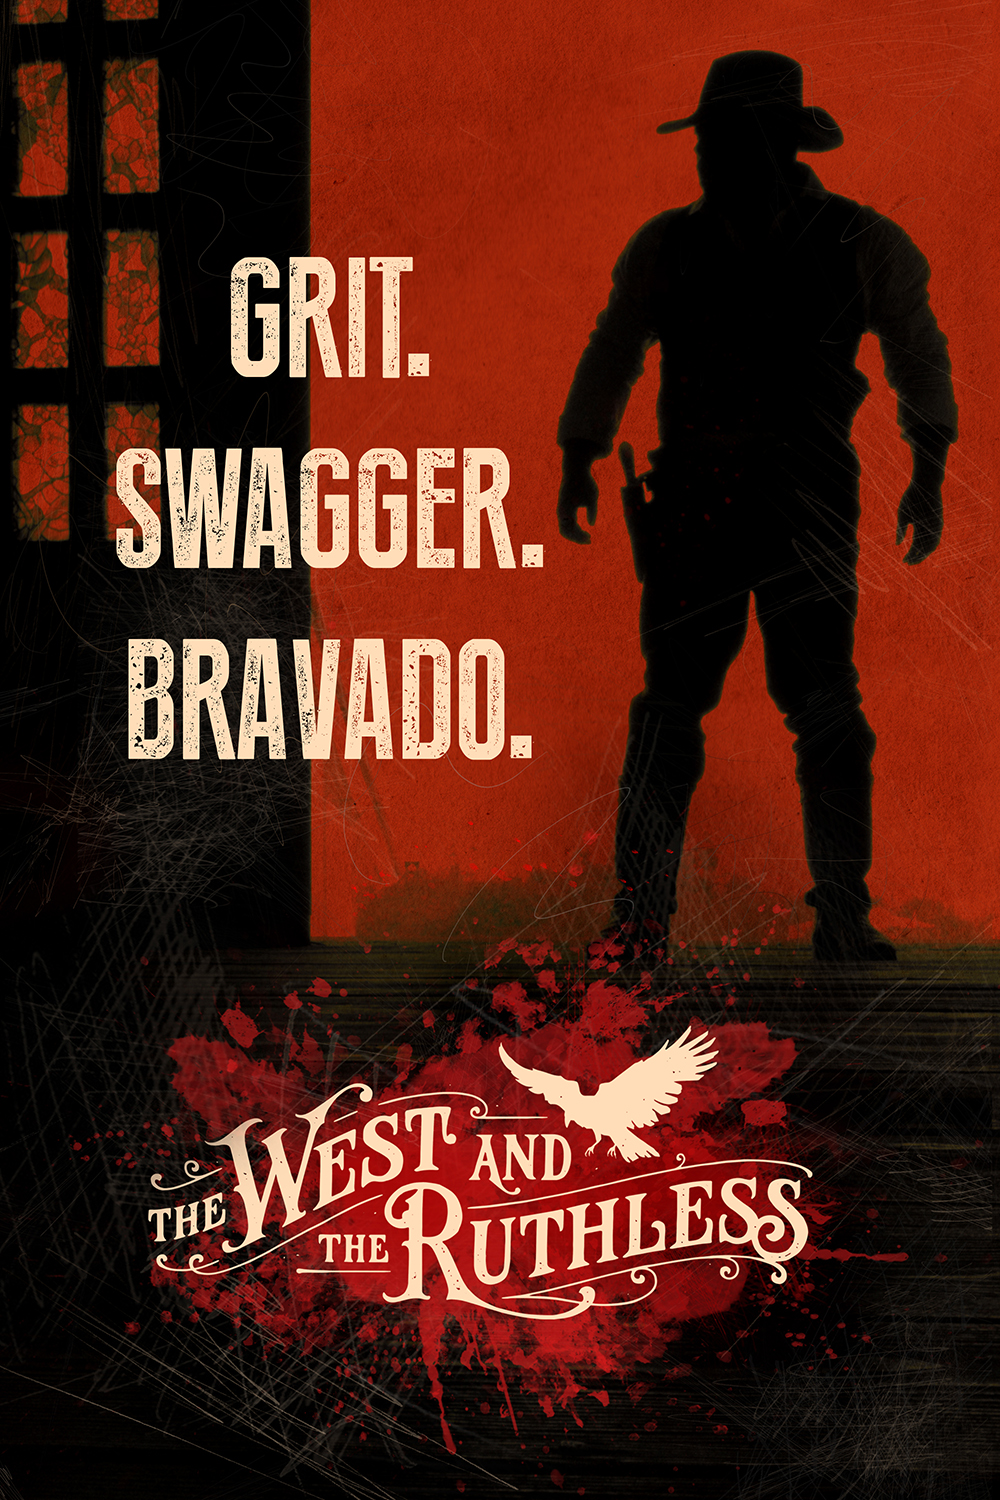 The West and the Ruthless, Global Release Cover